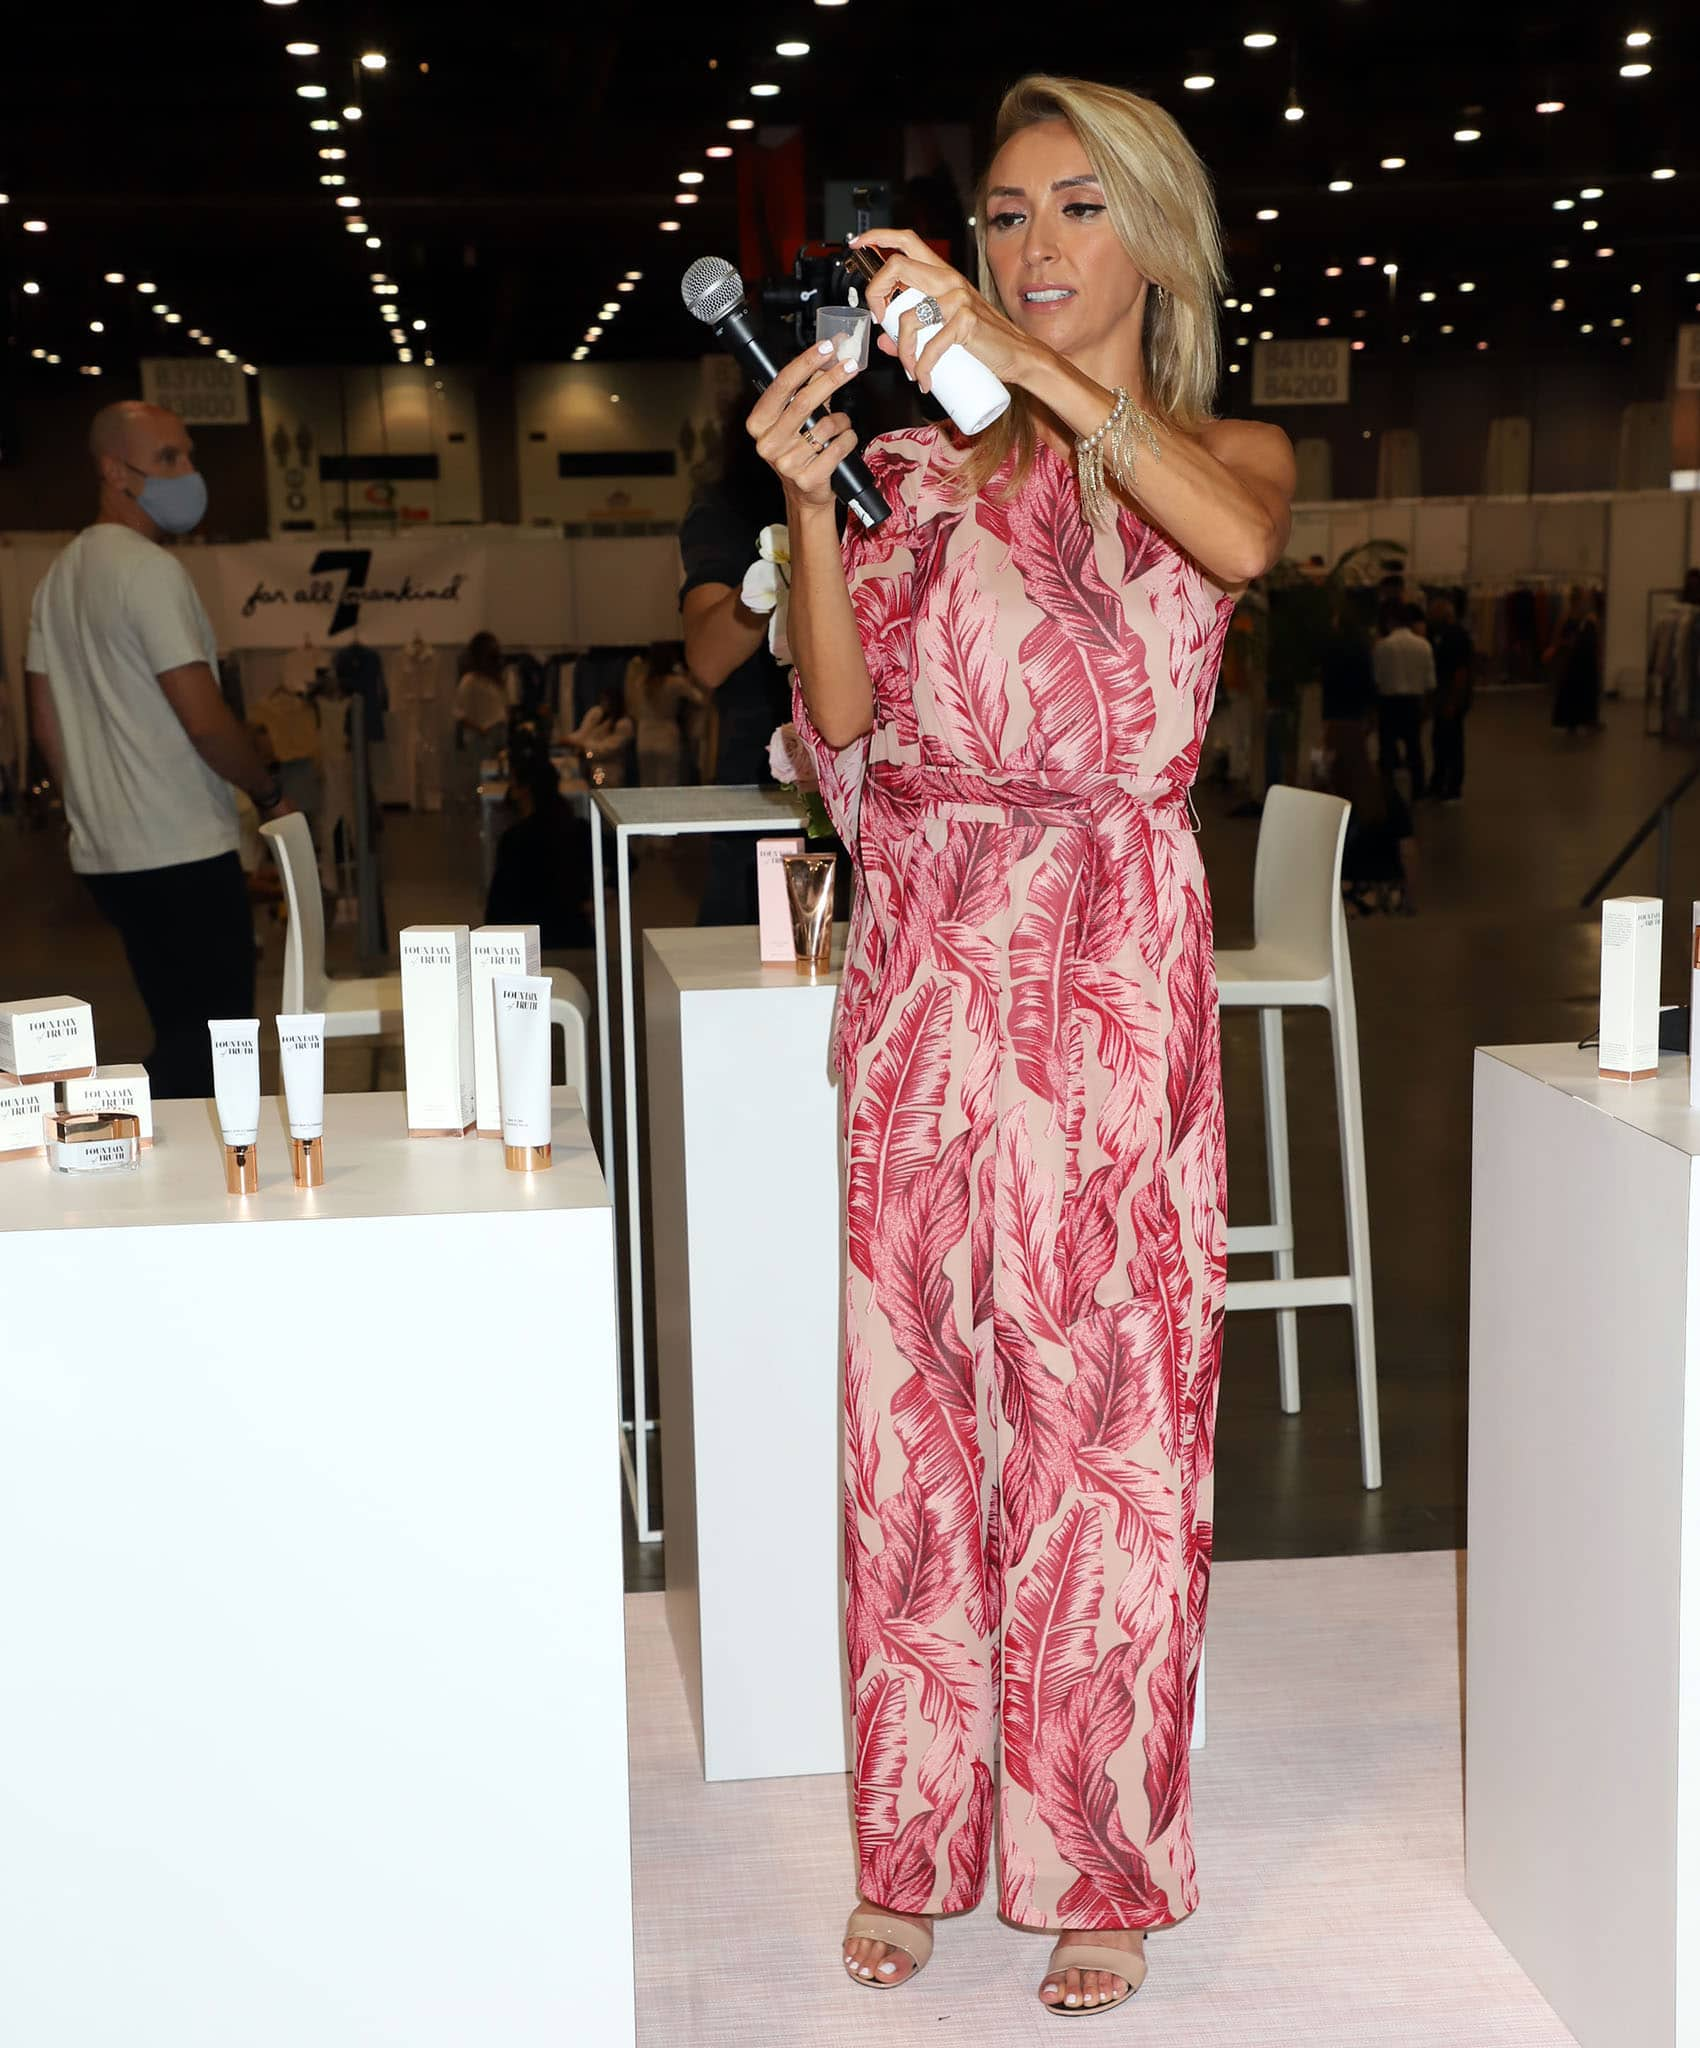 Giuliana Rancic demos her skincare line Fountain of Truth during day two of Magic Las Vegas